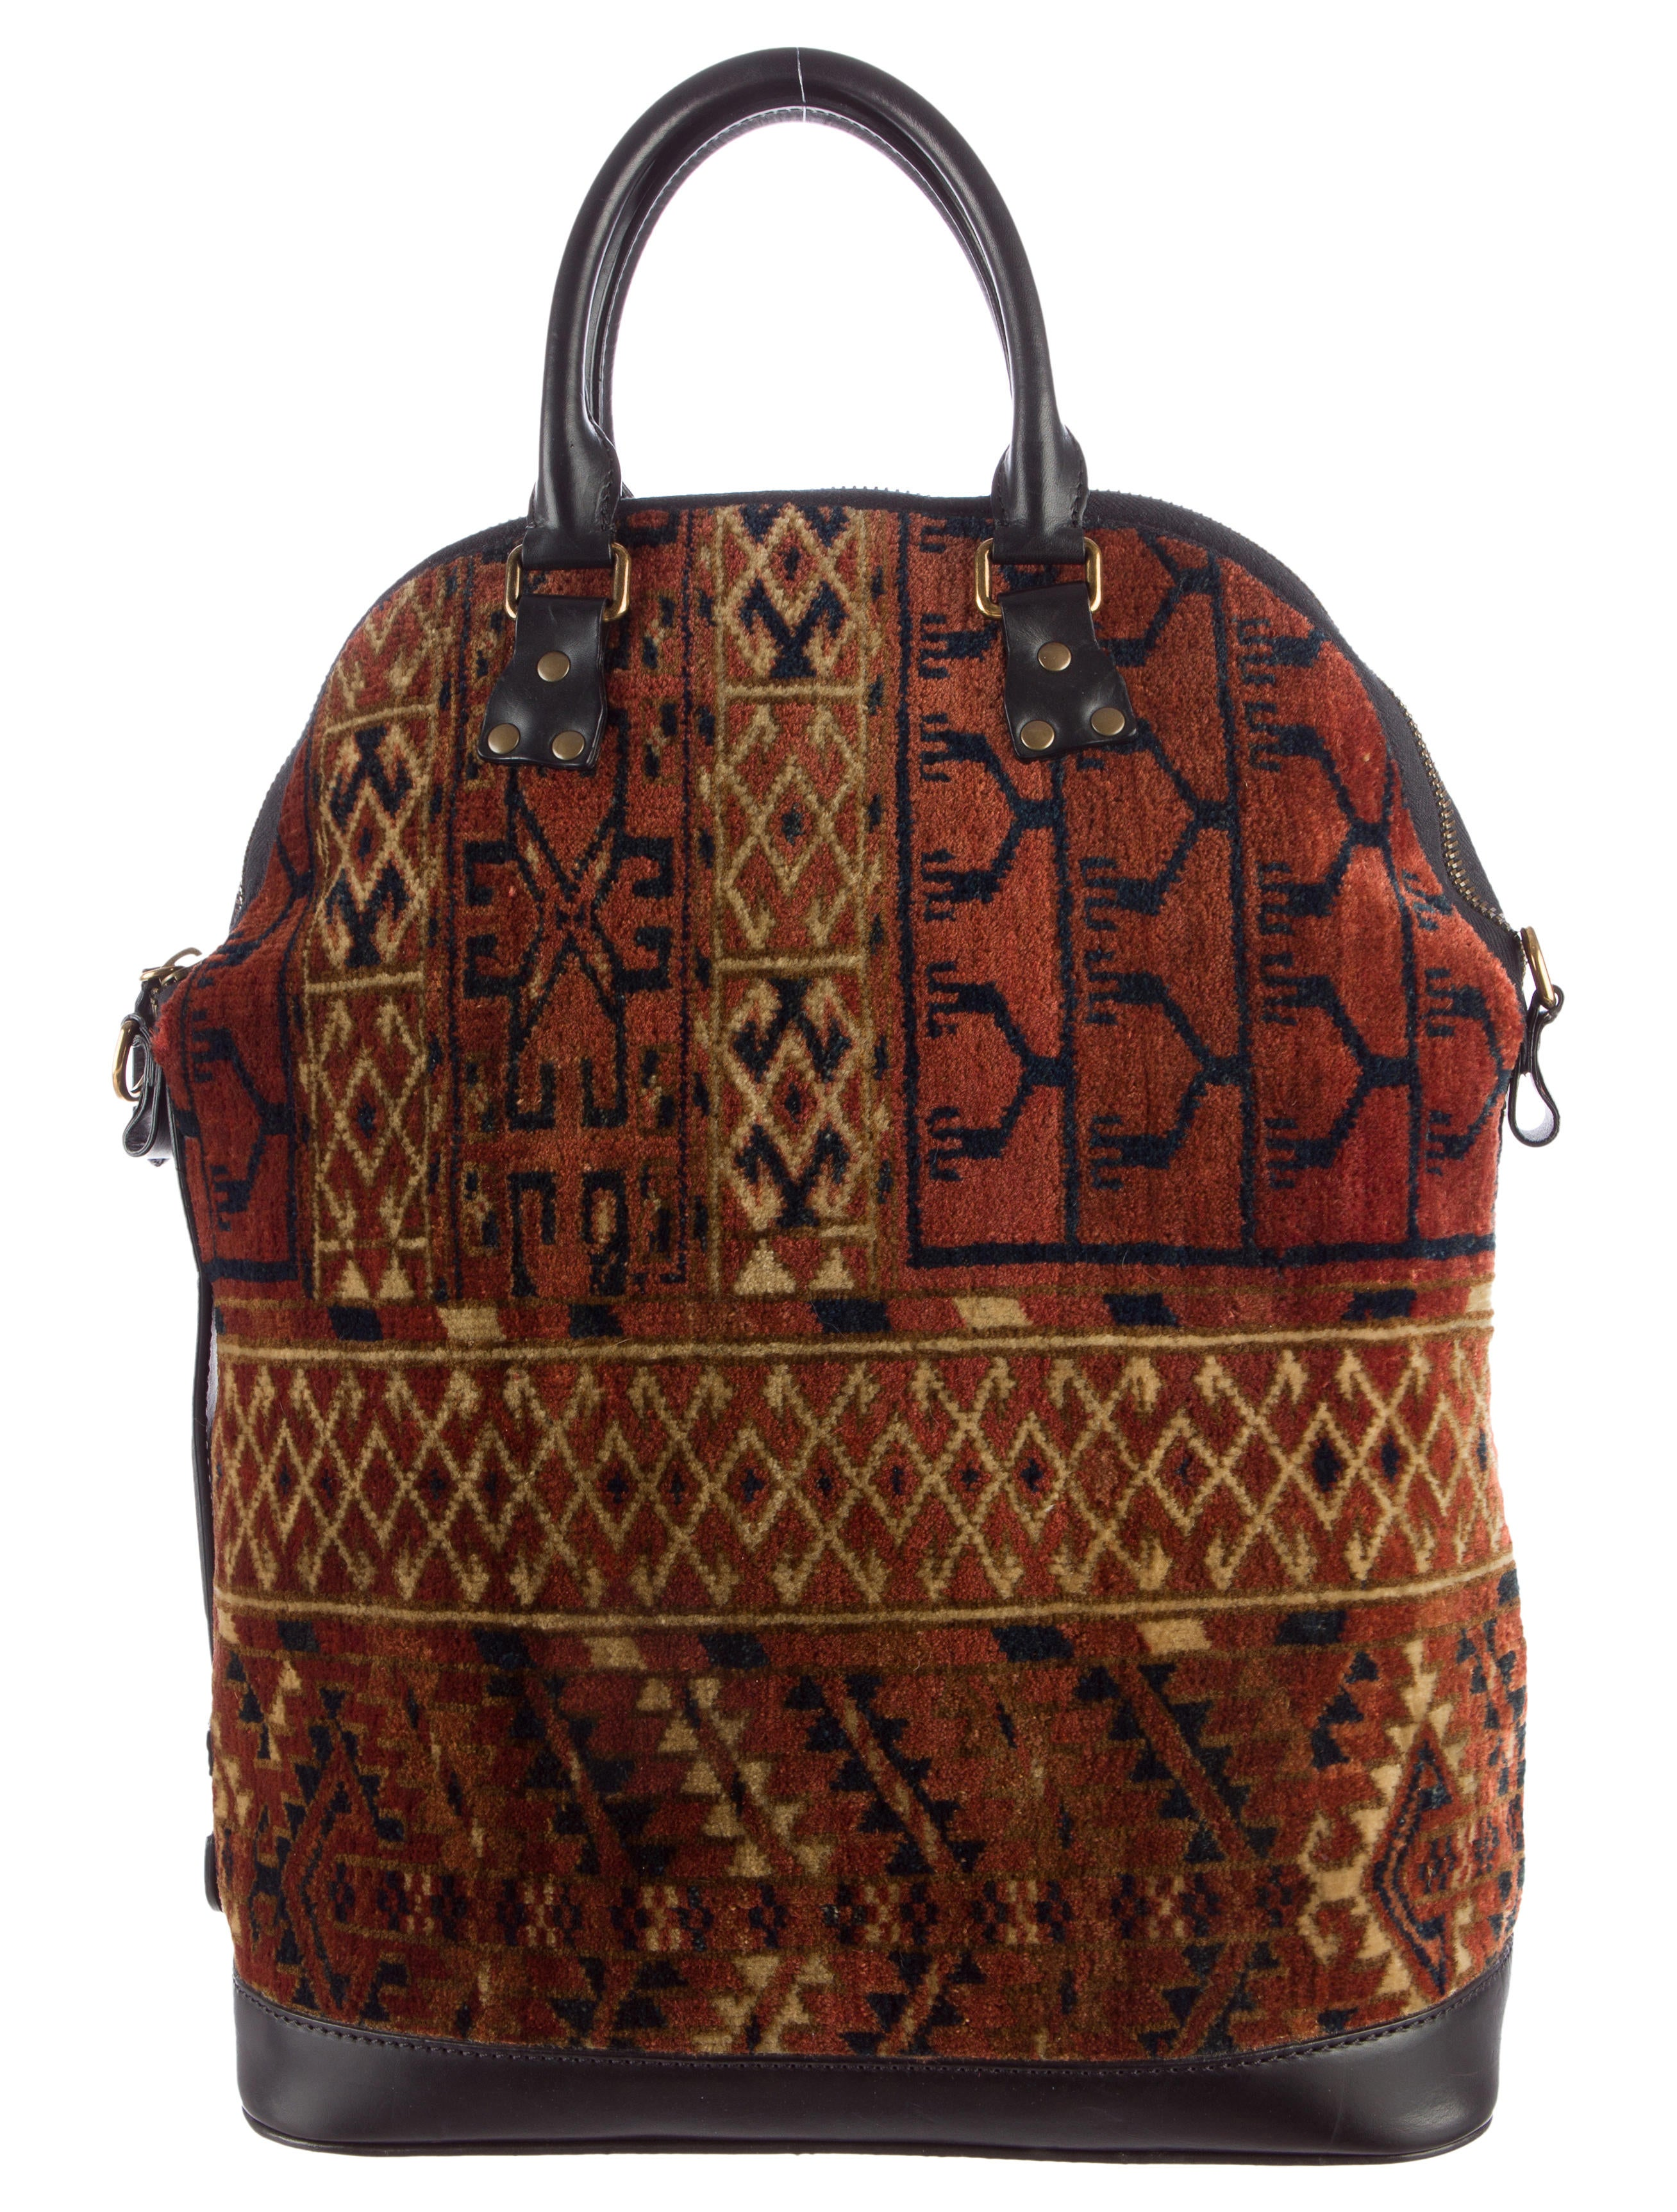 Burberry Prorsum Bloomsbury Tapestry Bag Bags Buf21311